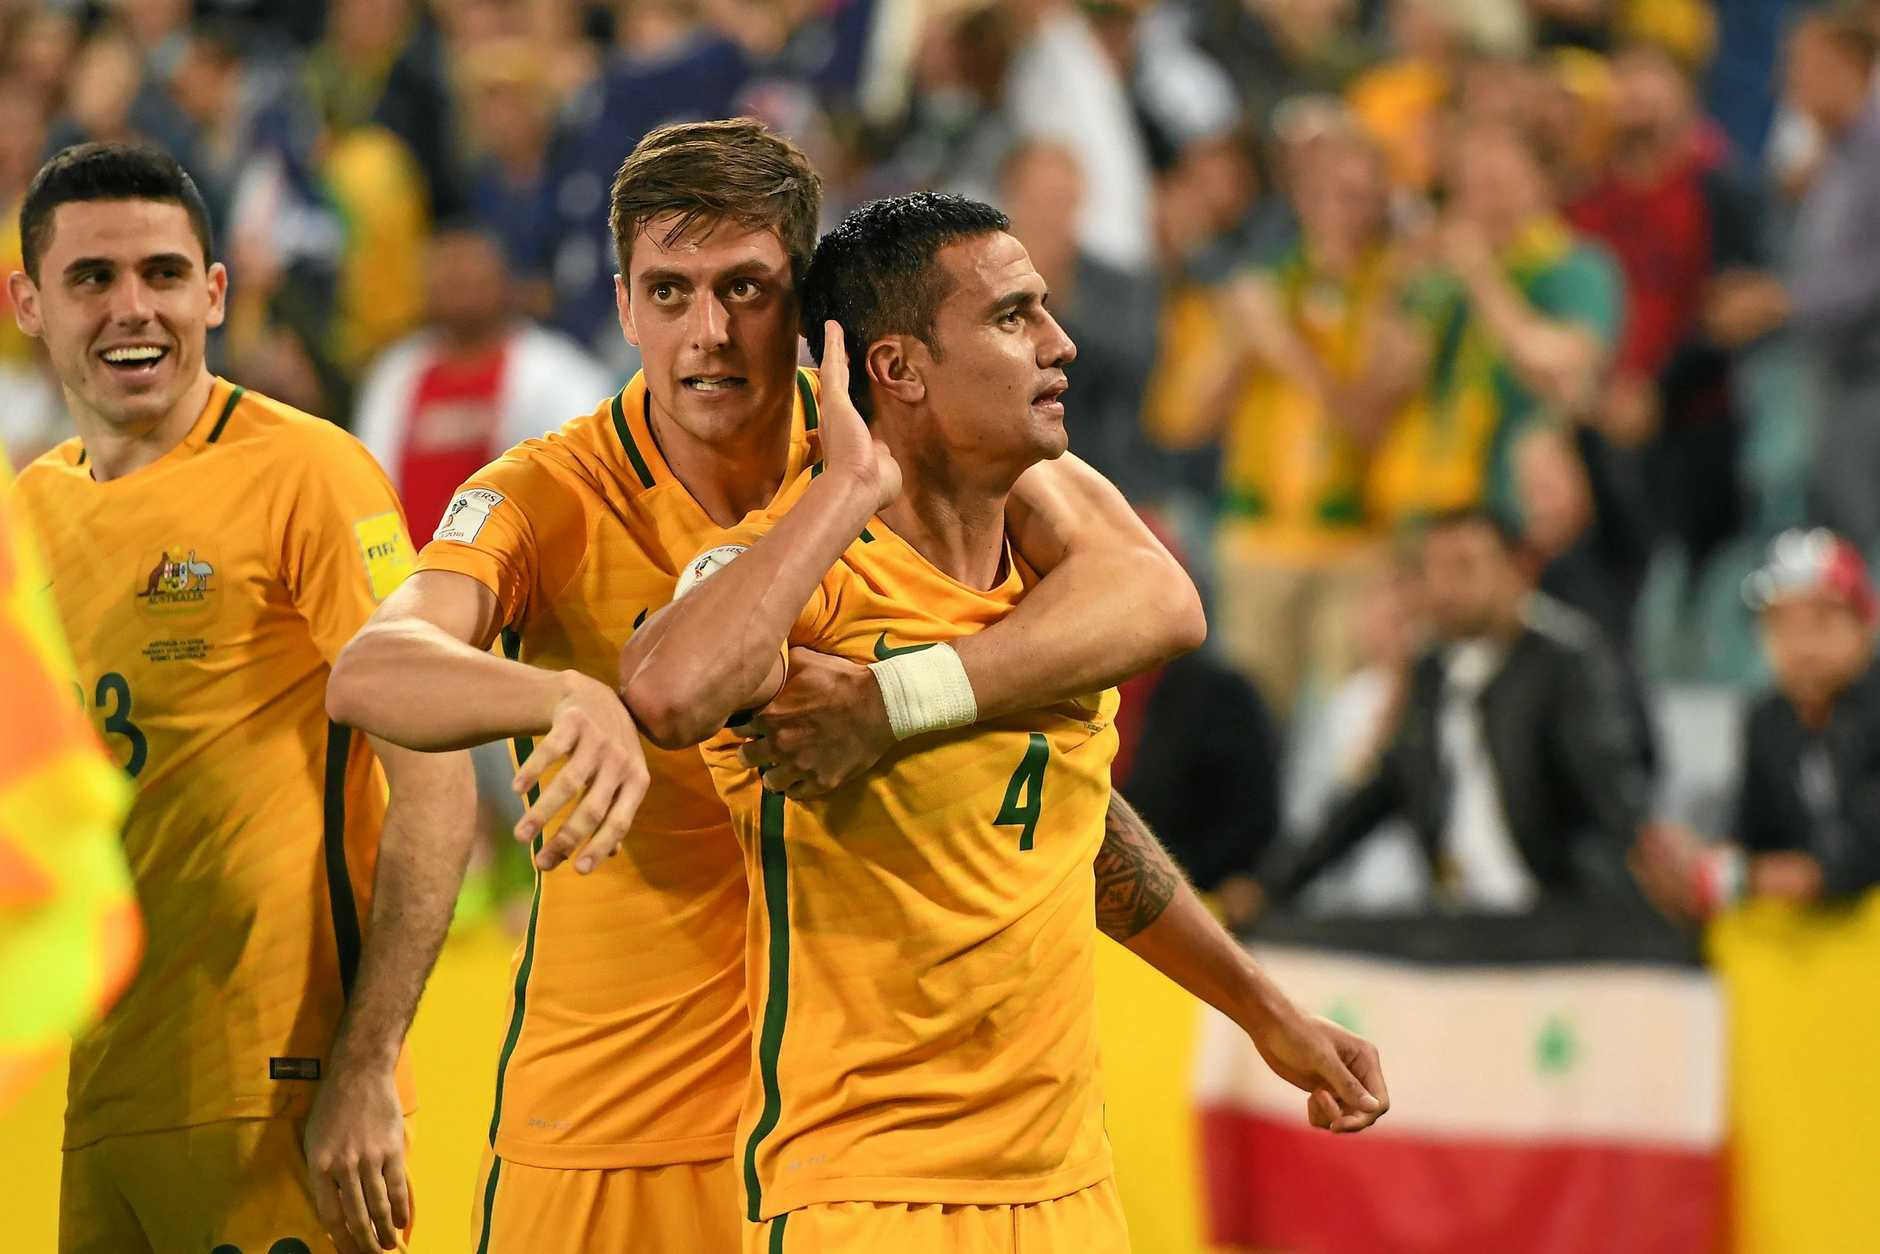 Tim Cahill gestures to the crowd after his match-winning goal.